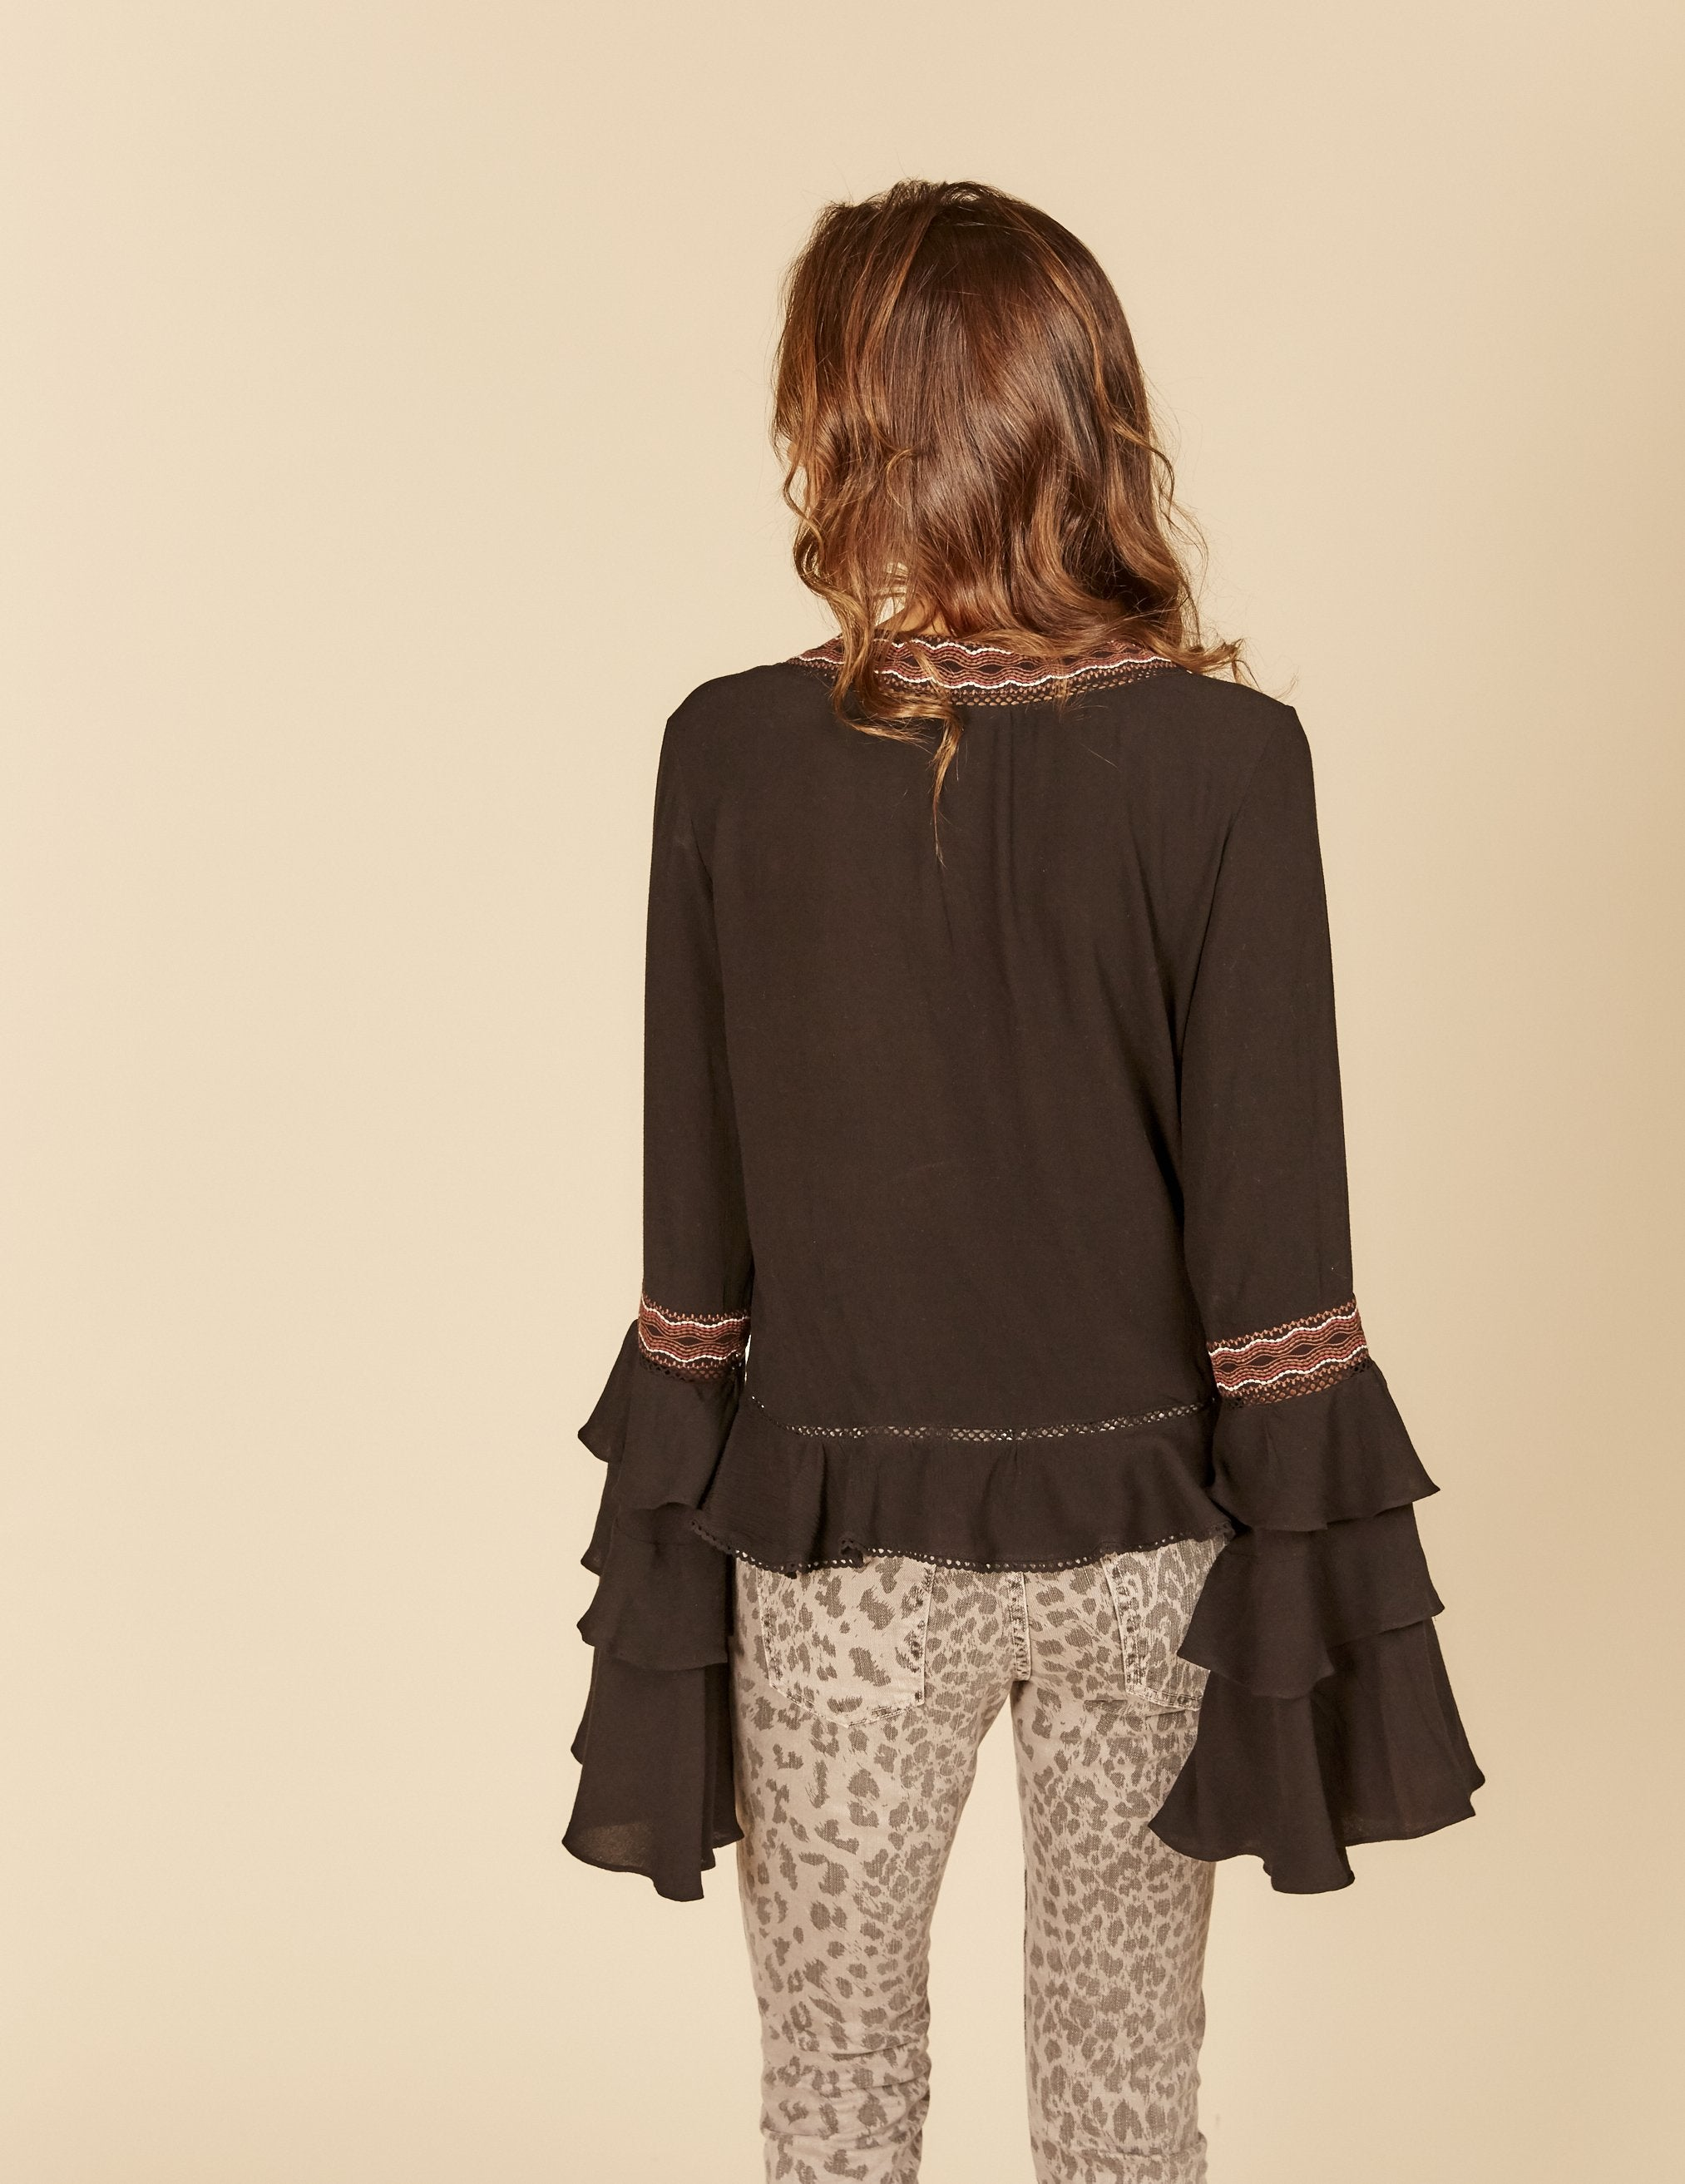 The Black Embroidered Blouse features a v-neck, 3 tier ruffled bel sleeves and an embroidered trim front tie detail.